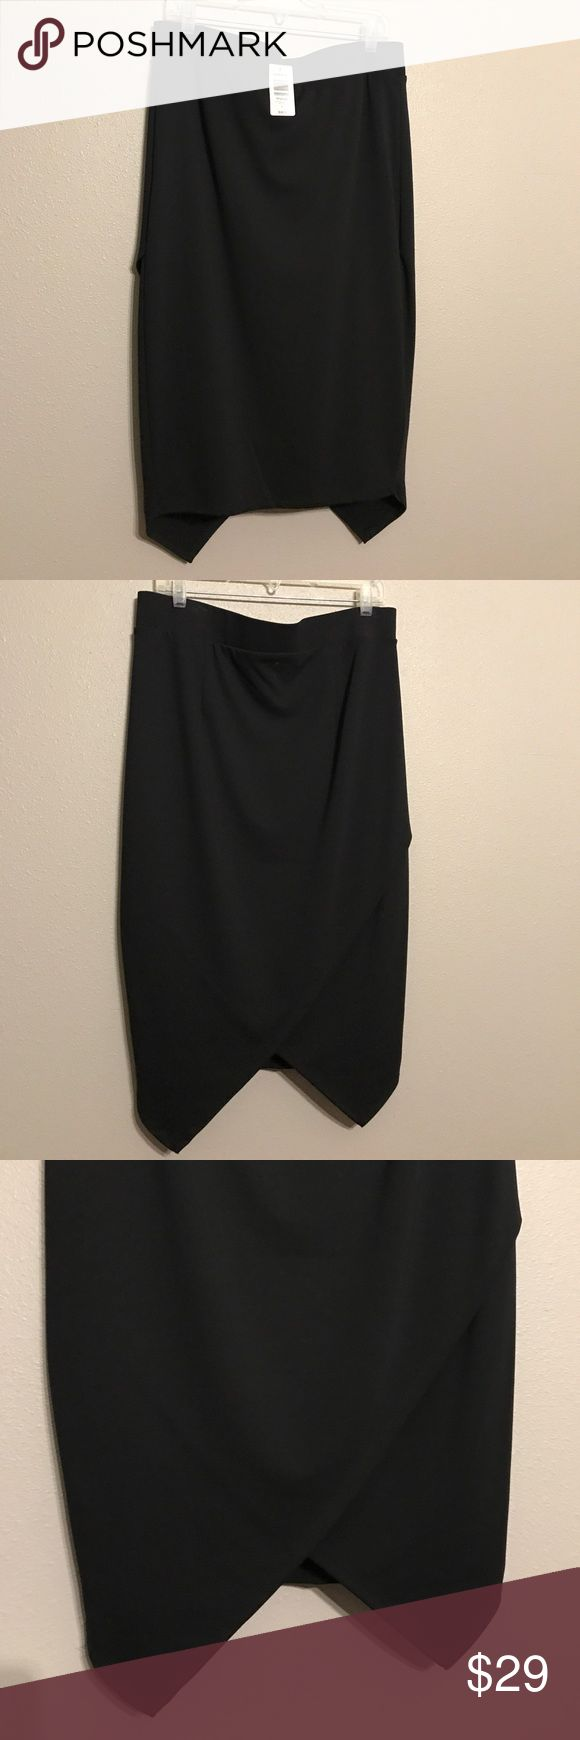 TORRID Black Envelope Skirt Size 1 *New w/ Tags* TORRID Black Envelope Skirt Size 1 *New w/ Tags* TORRID Skirts Midi